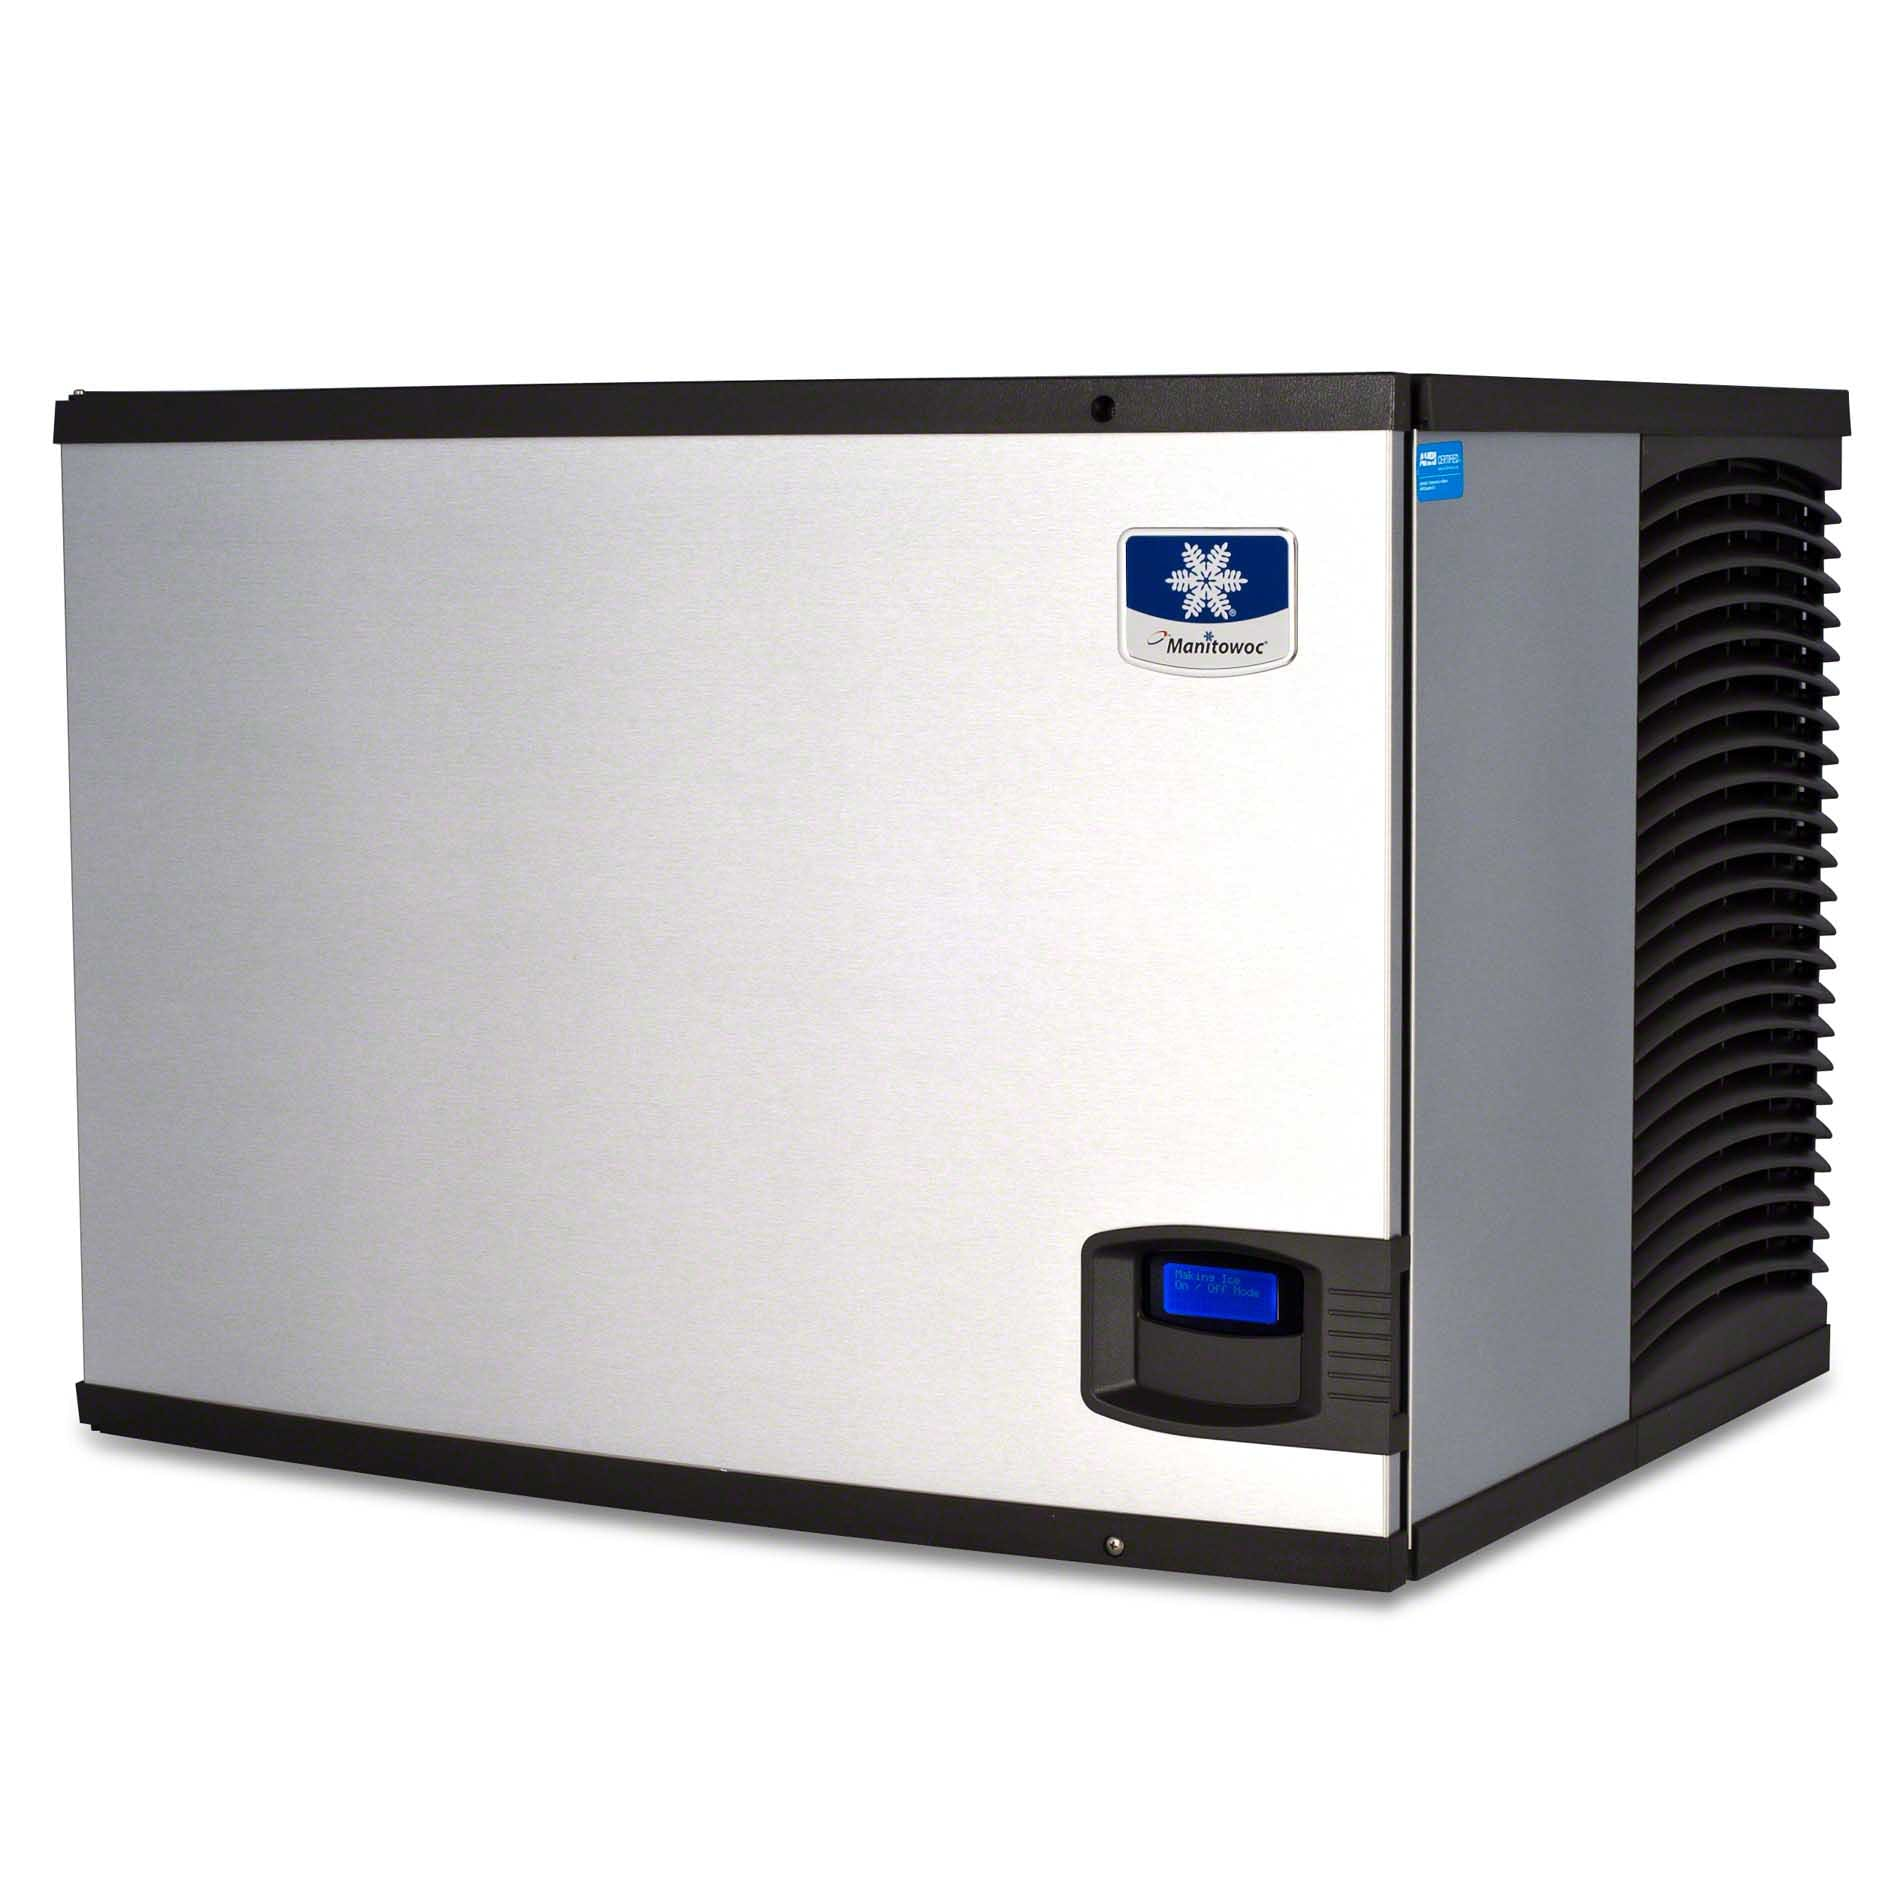 Manitowoc - IY-0504A 560 lb Half Size Cube Ice Machine - Indigo Series - sold by Food Service Warehouse